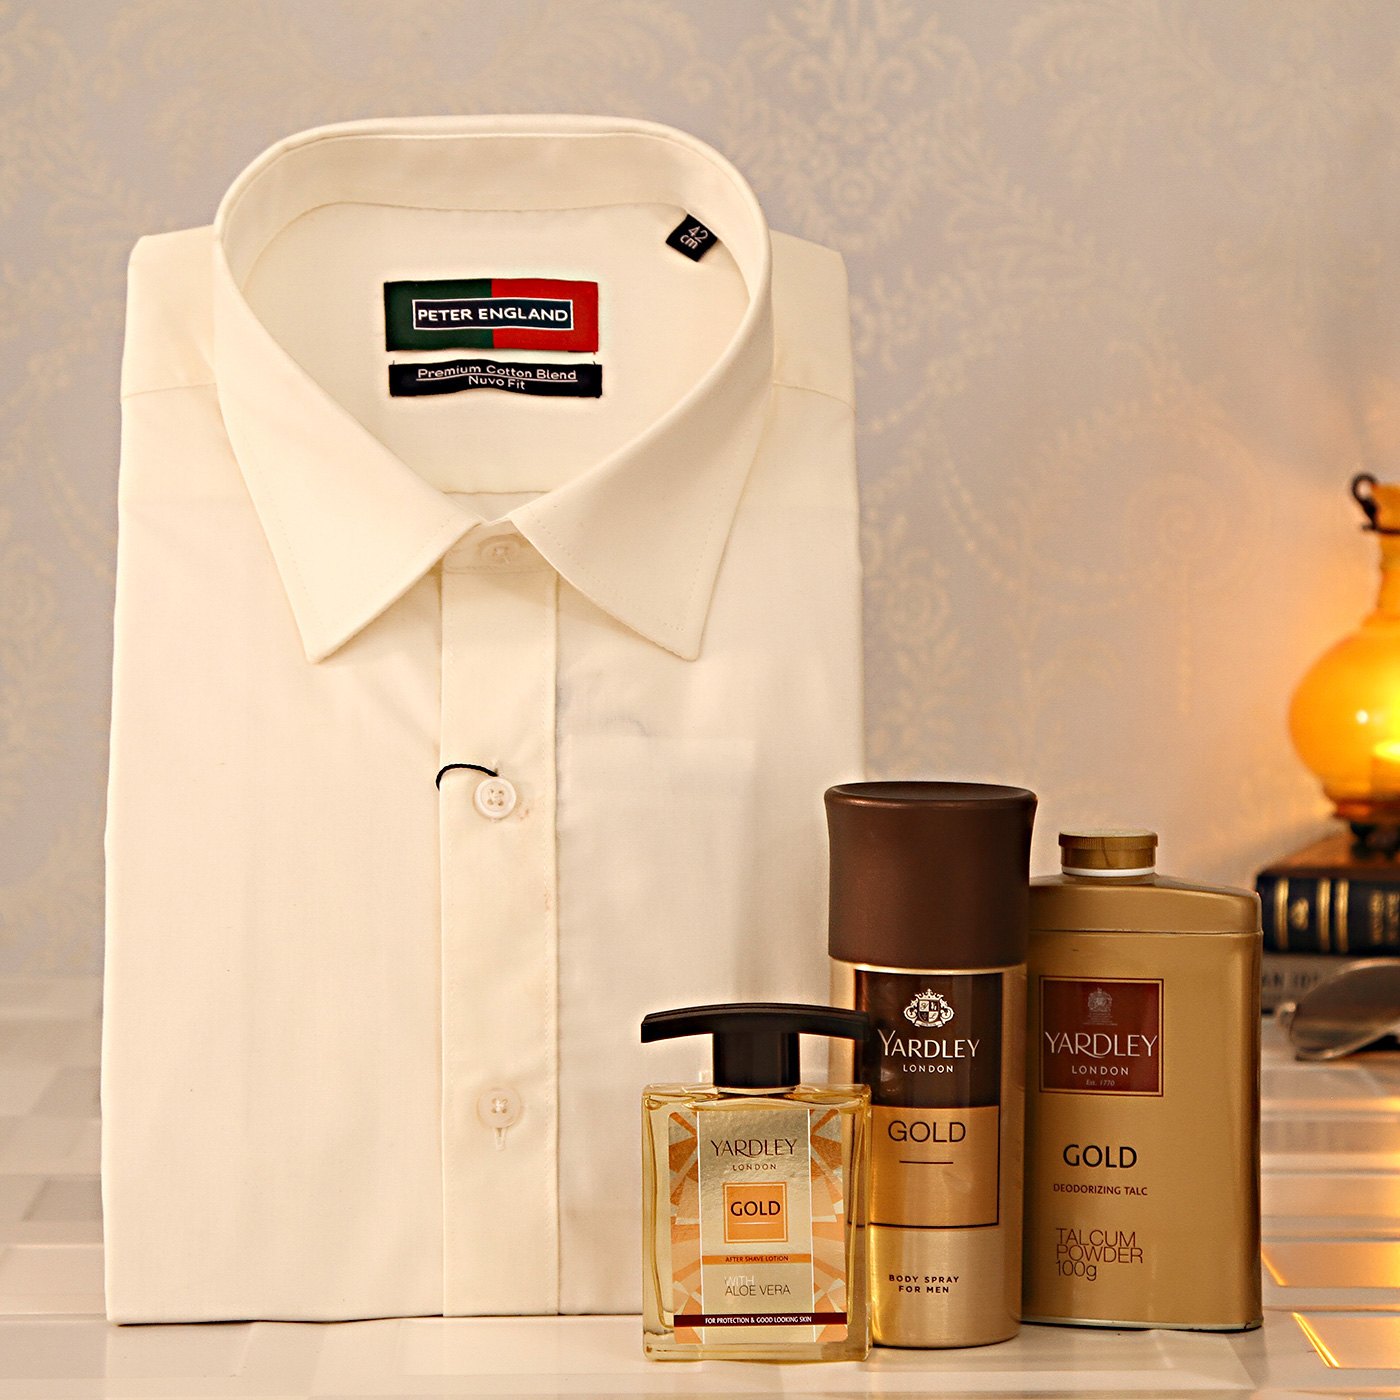 Peter-England-Off-White-Shirt-with-Yardley-Gift-Set